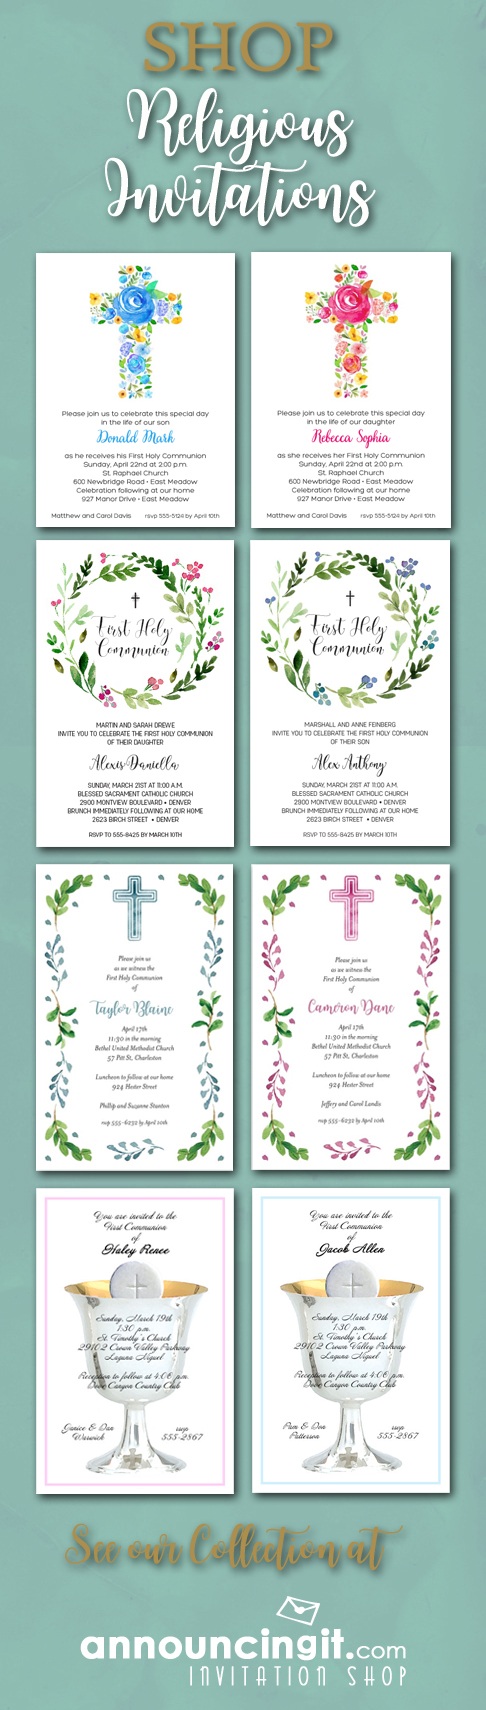 Shop Religious First Communion, Baptism, Christening Celebration Invitations at Announcingit.com Invitation Shop